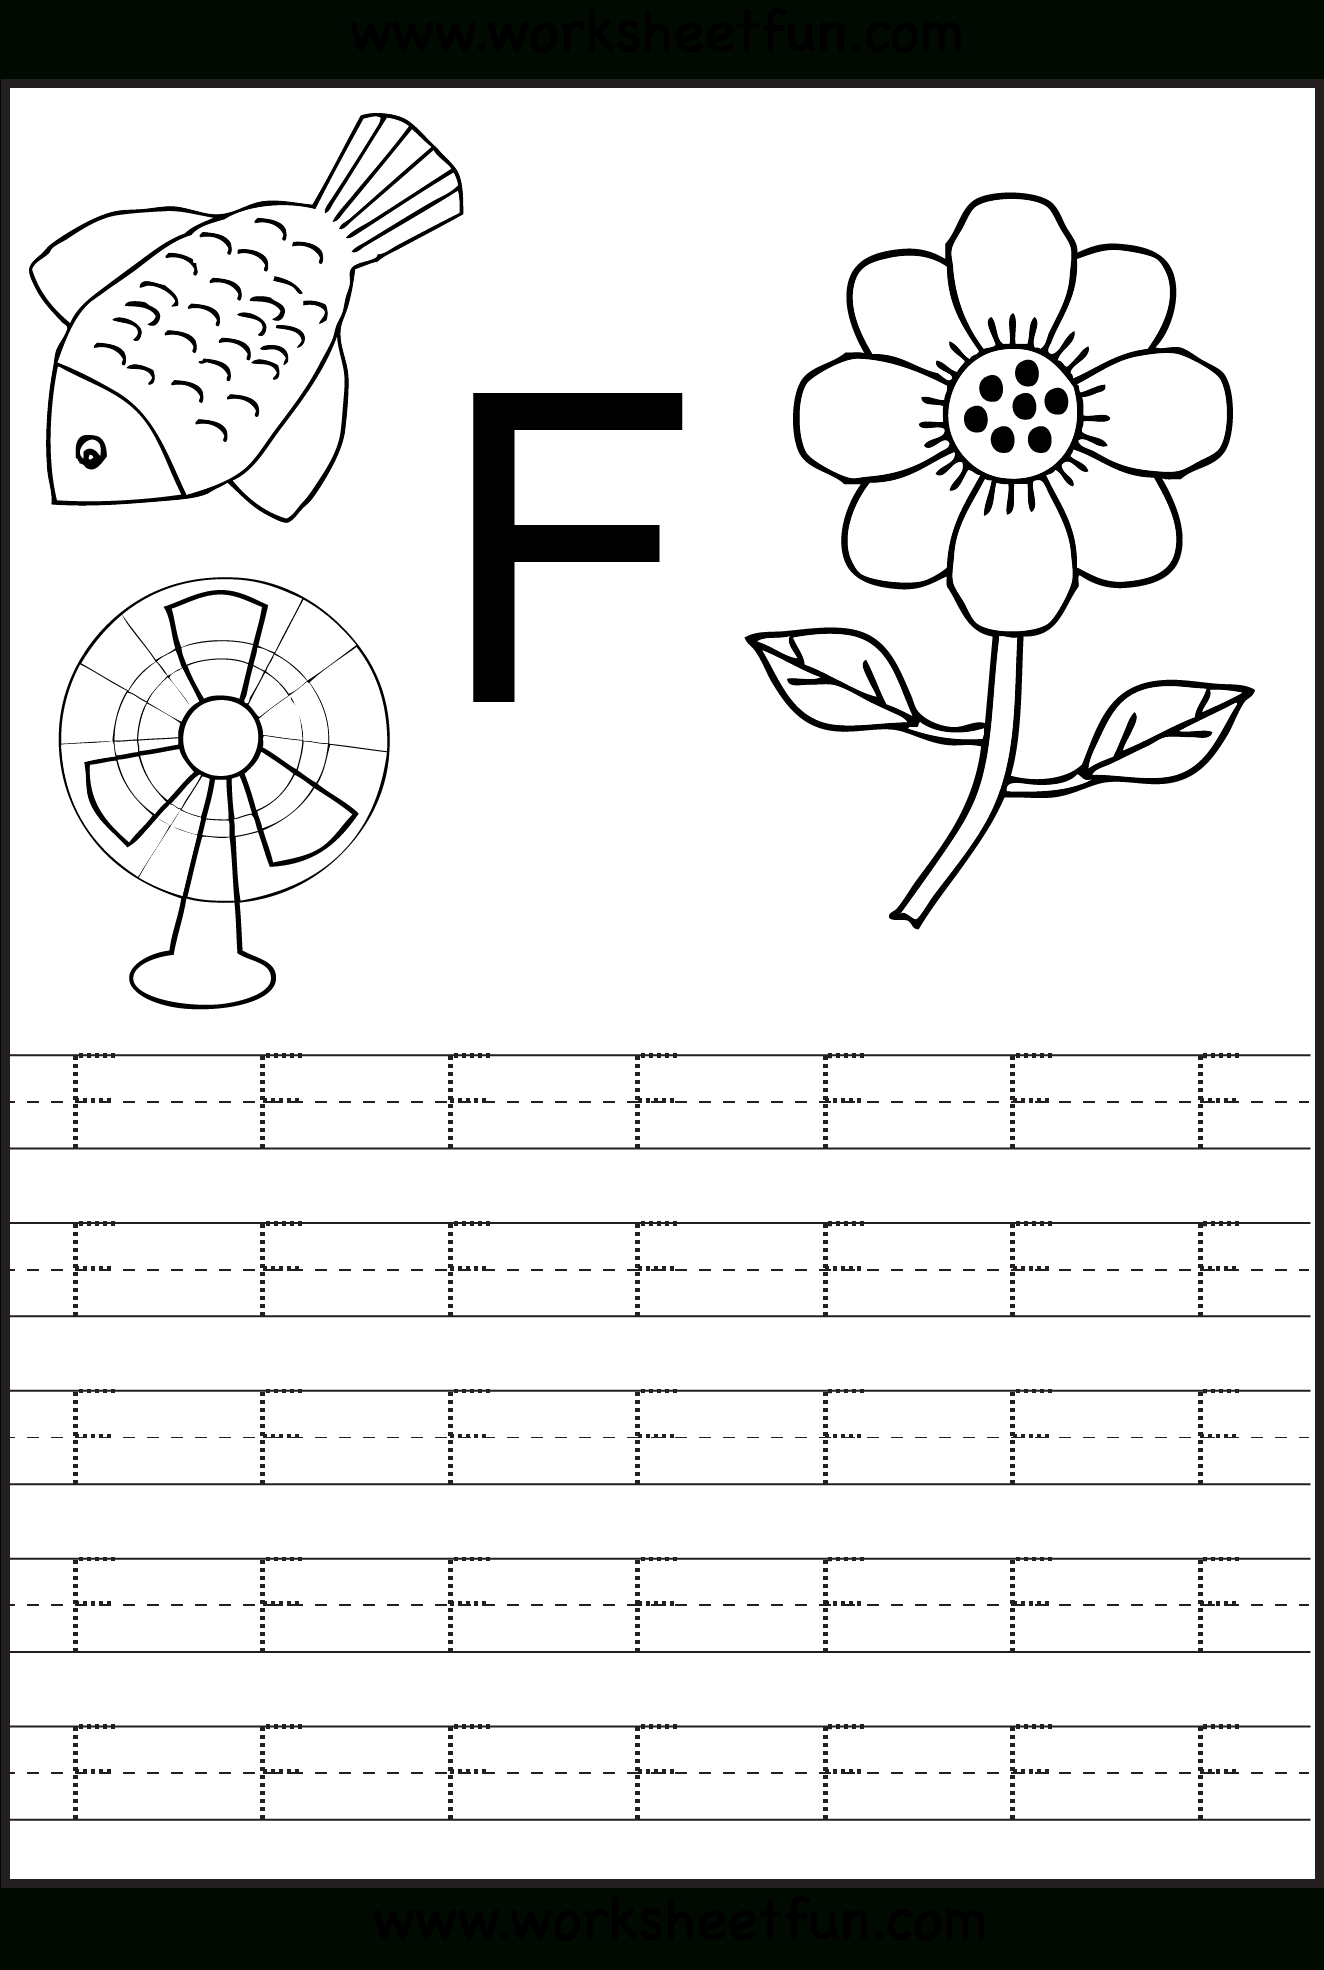 Letter F Worksheets | H3Dwallpapers - High Definition Free within F Letter Worksheets Preschool